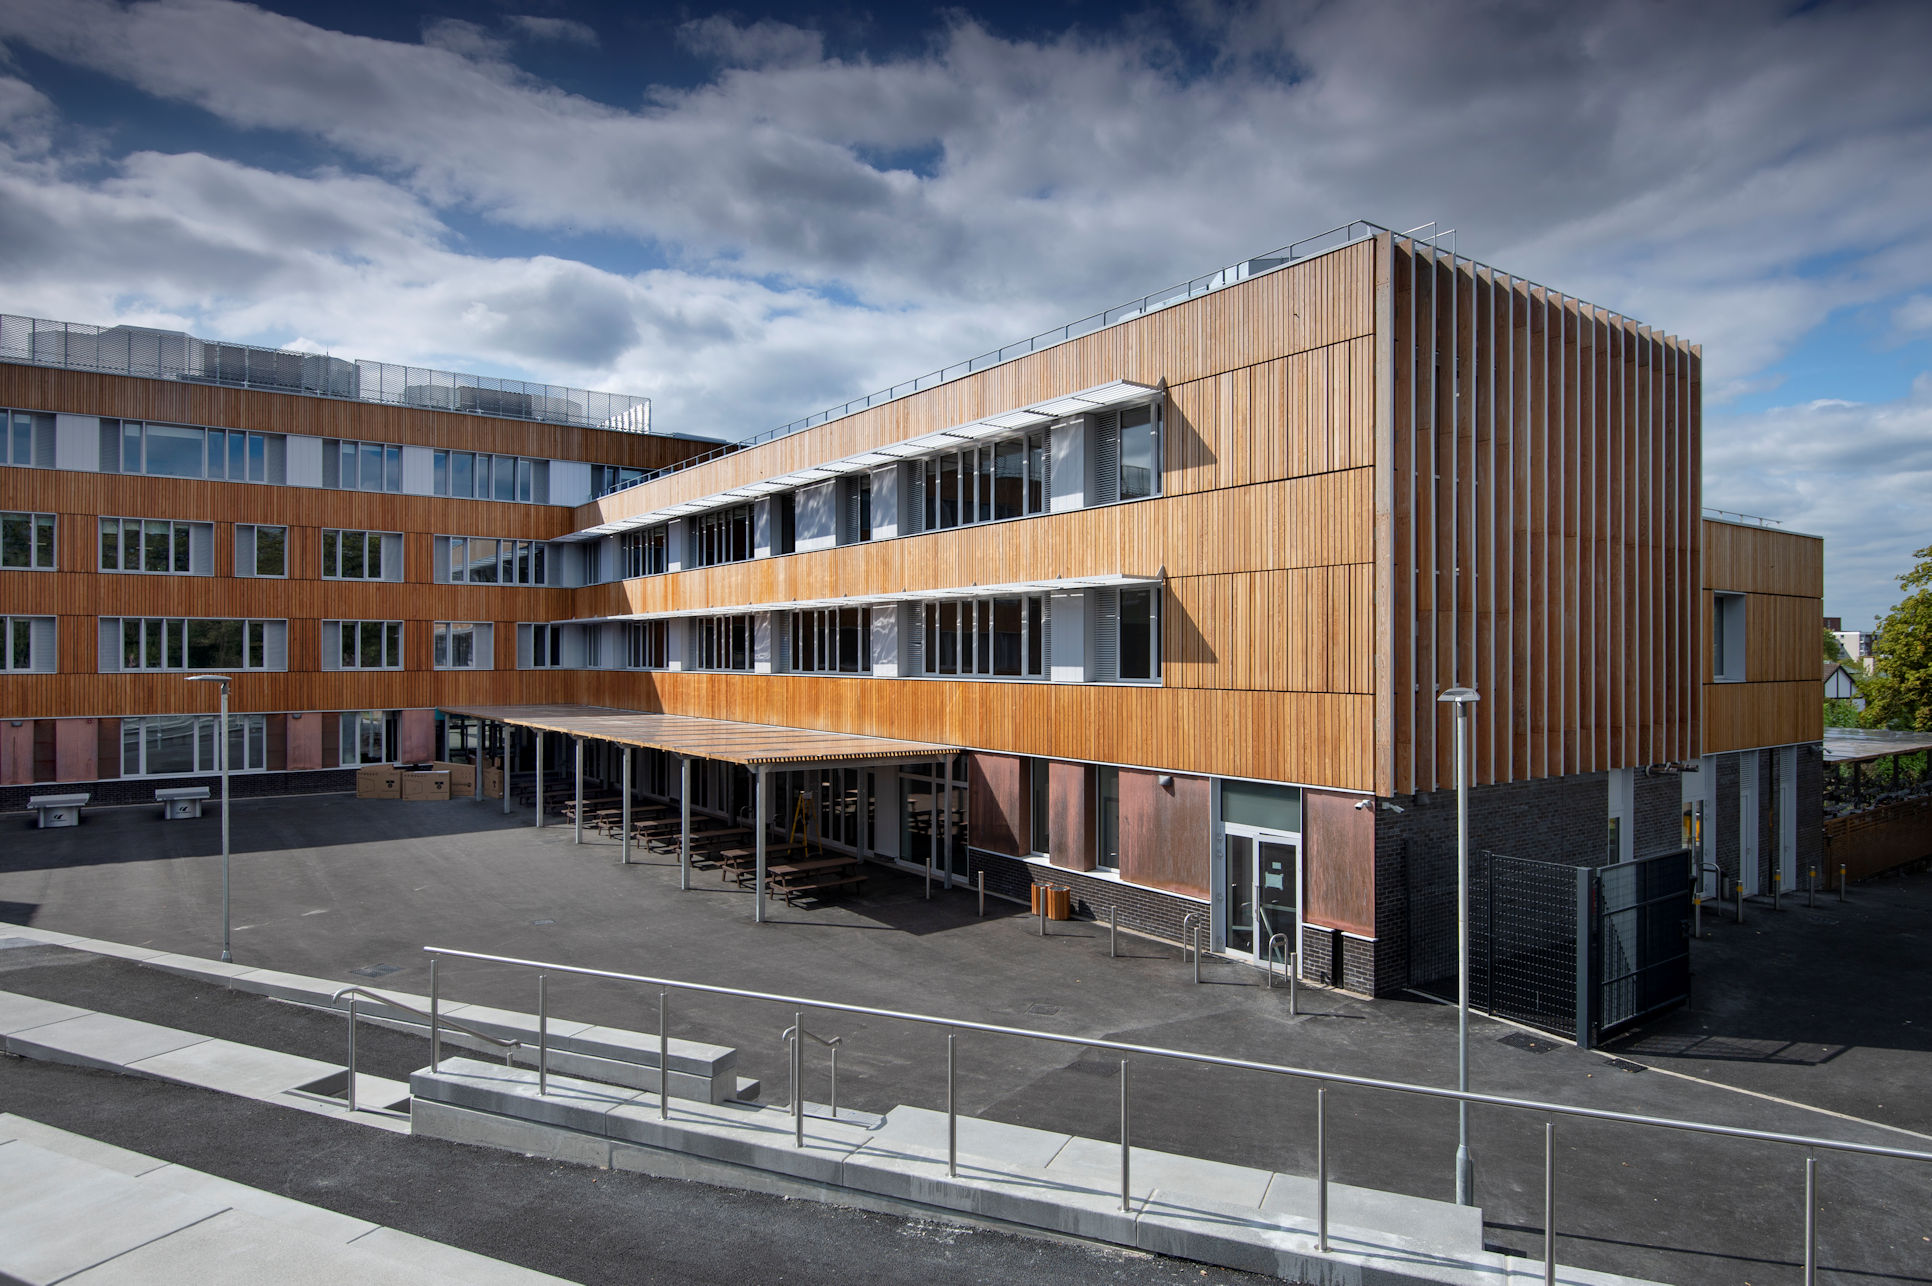 The new Passivhaus Harris Academy in Sutton, south London